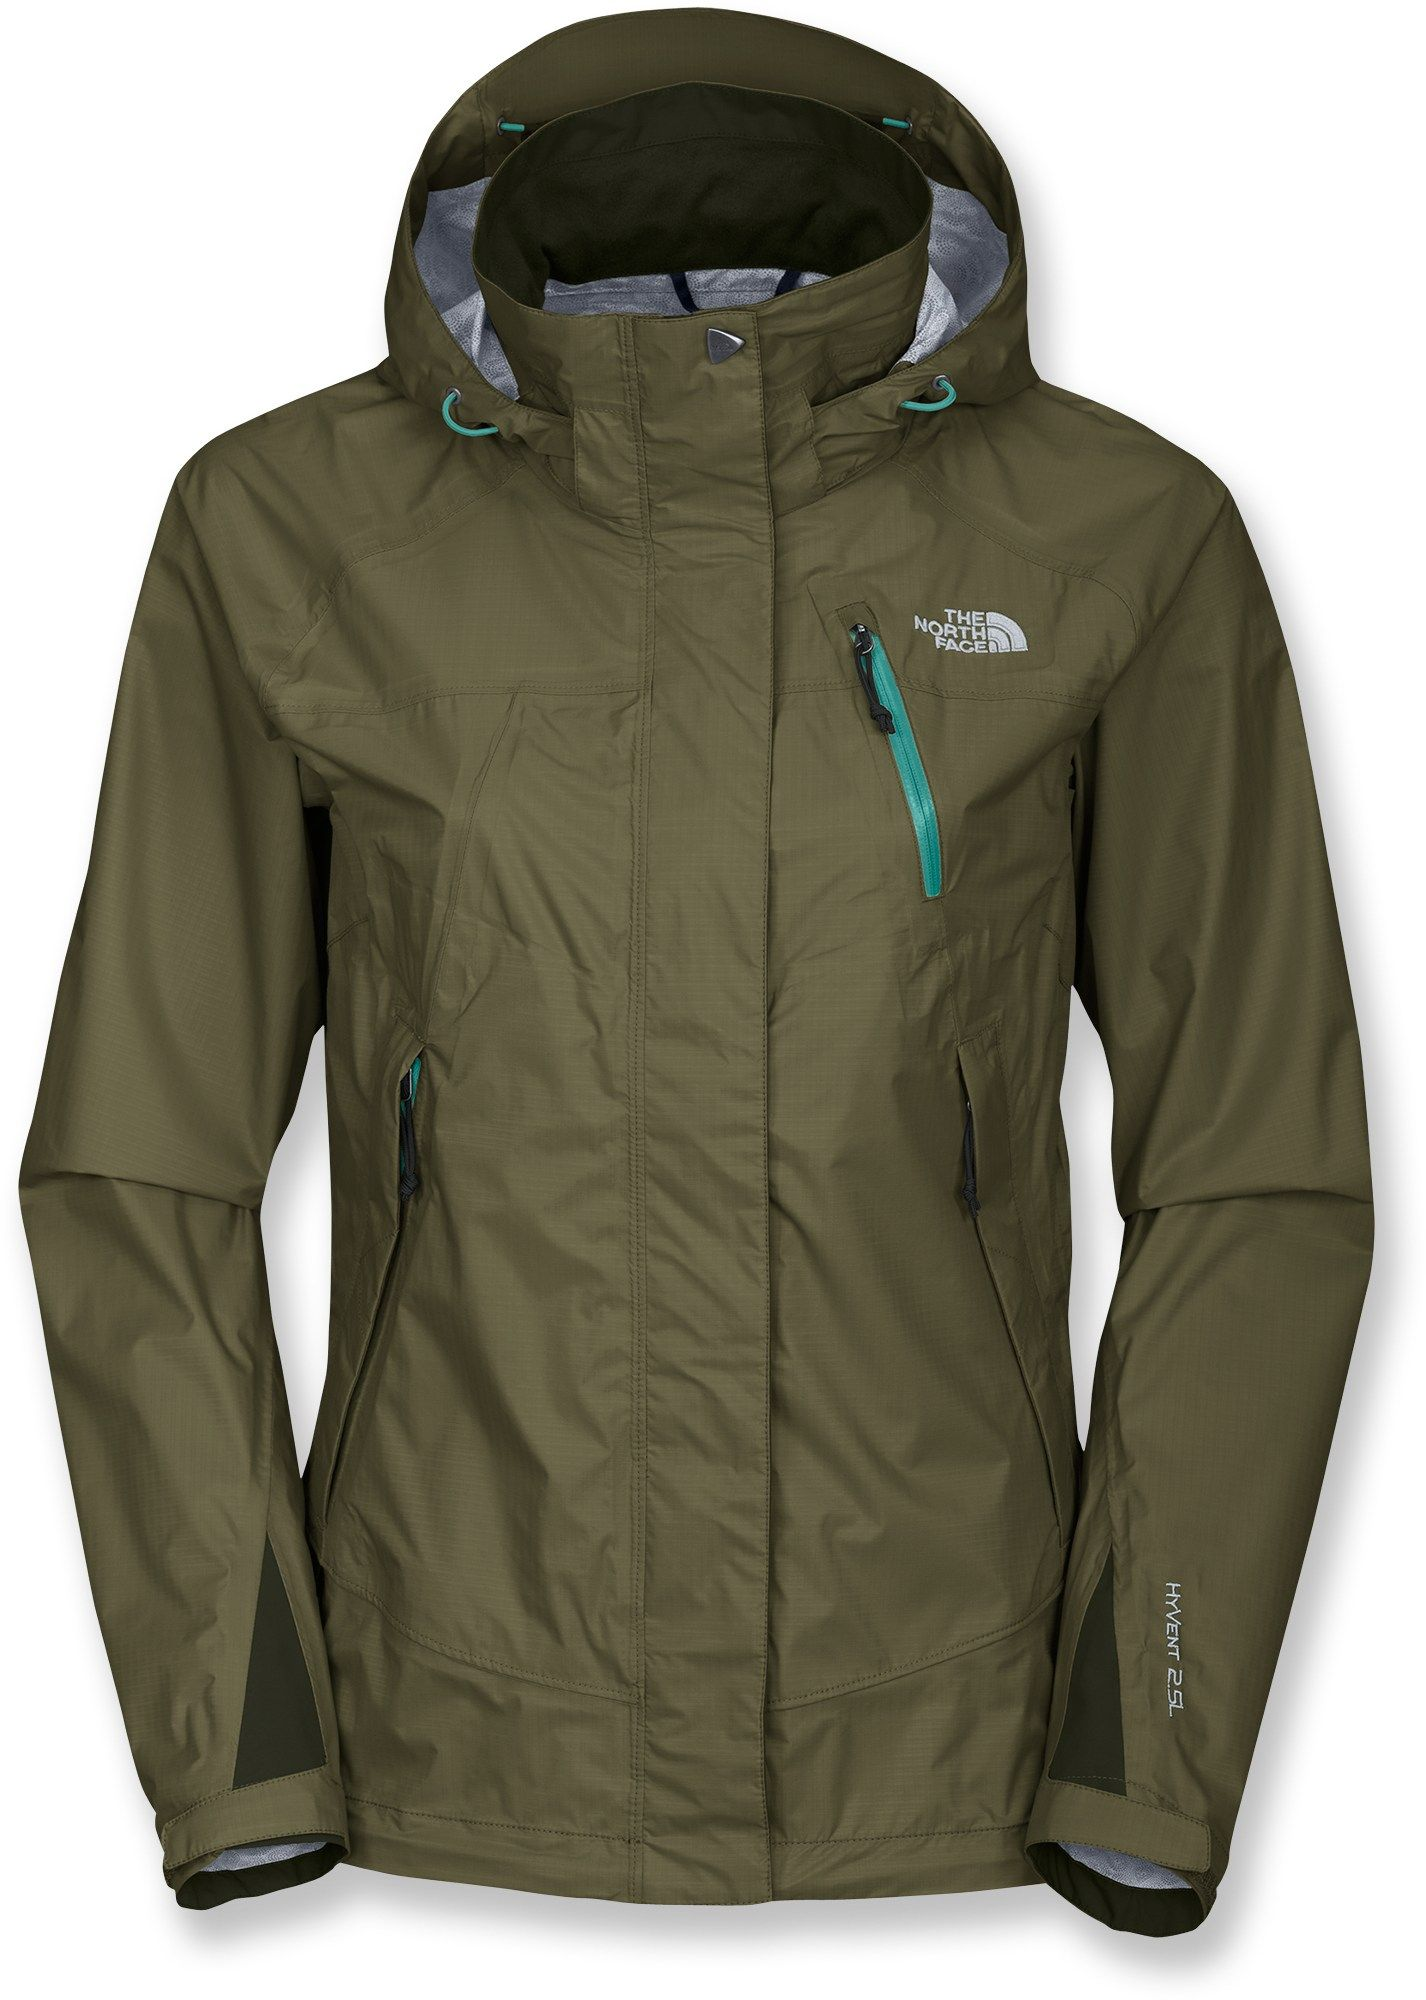 019d55f9d The North Face Karren Rain Jacket | Coats & Jackets | Rain jacket ...